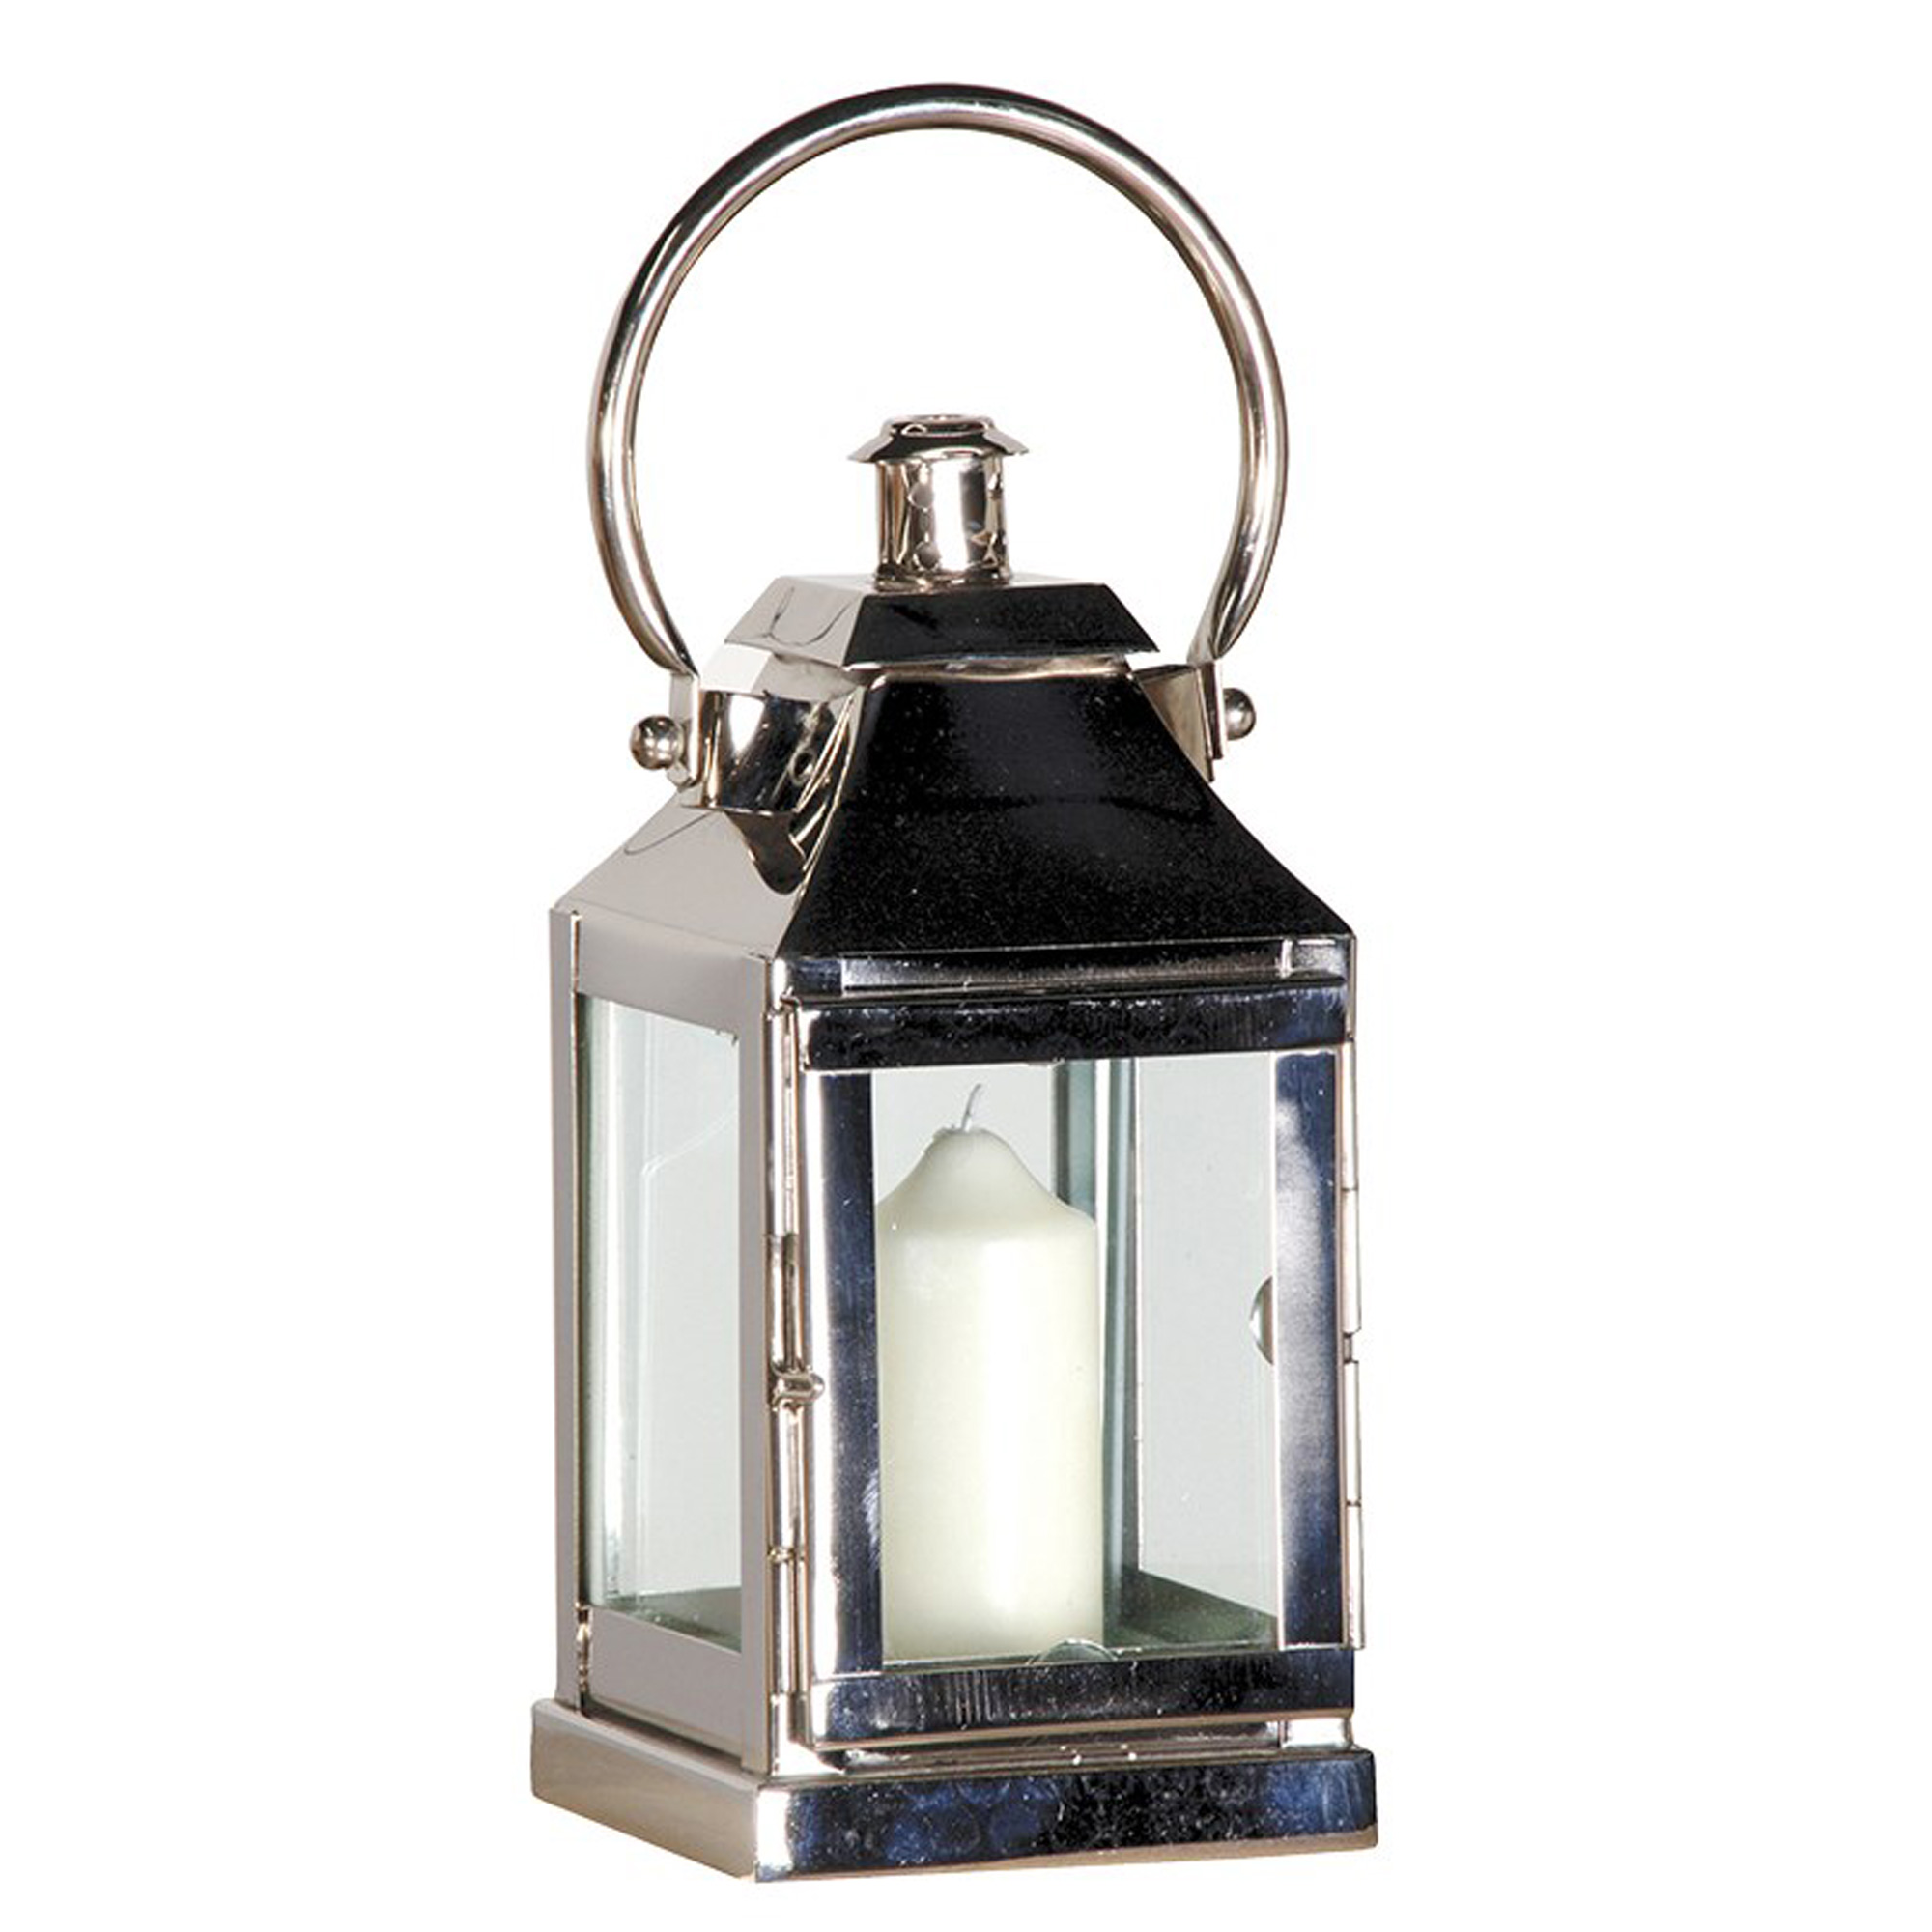 Small Nickel Finish Small Lantern